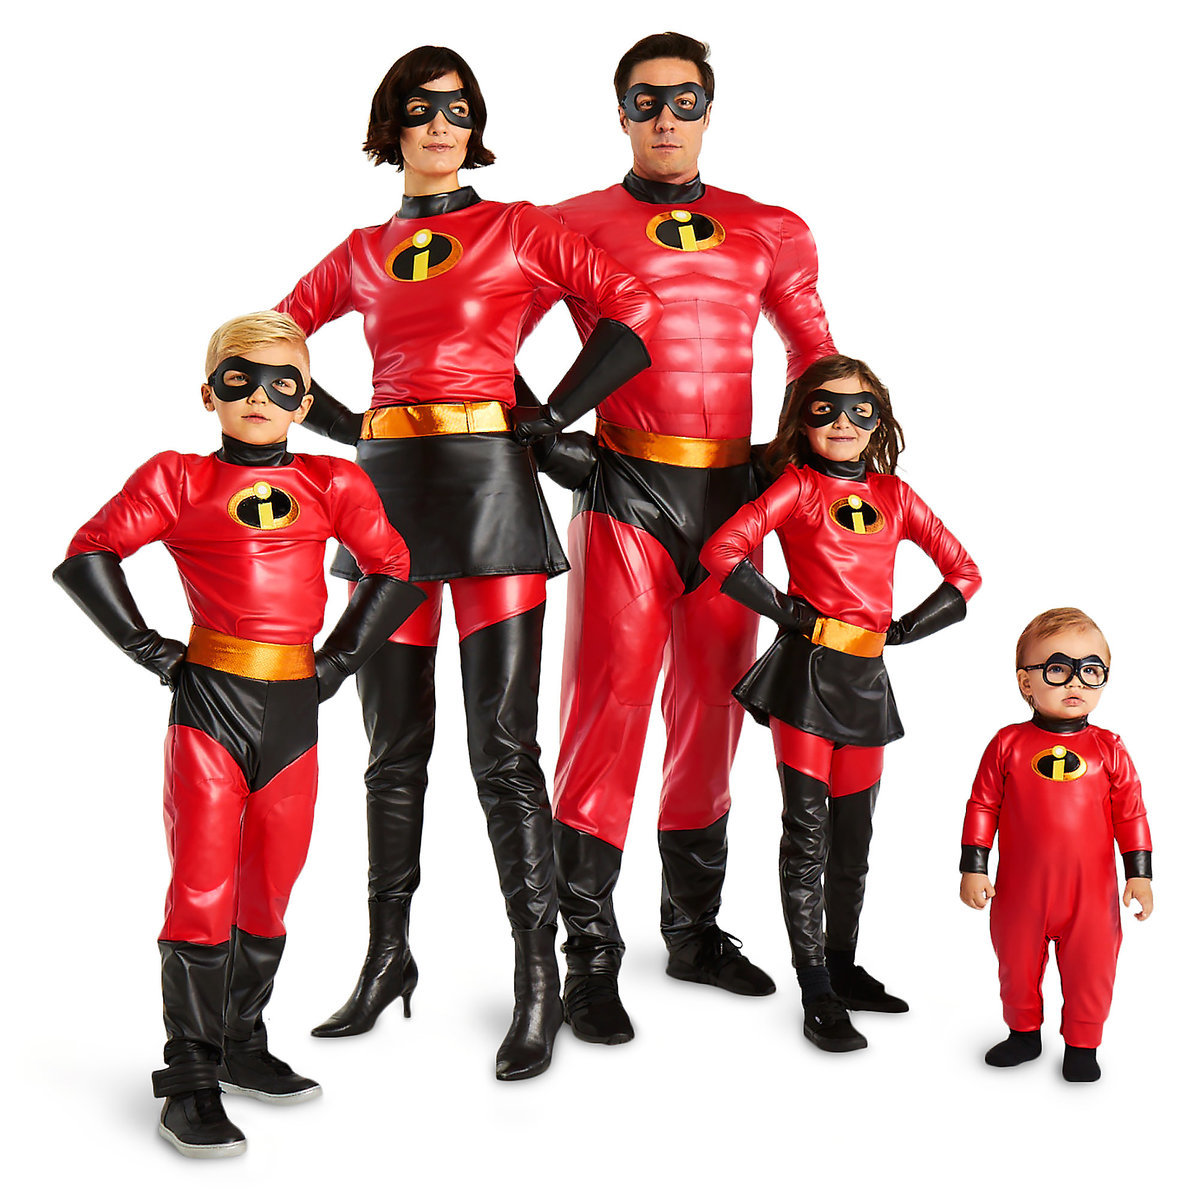 New Incredibles 2 Clothing Collection Released